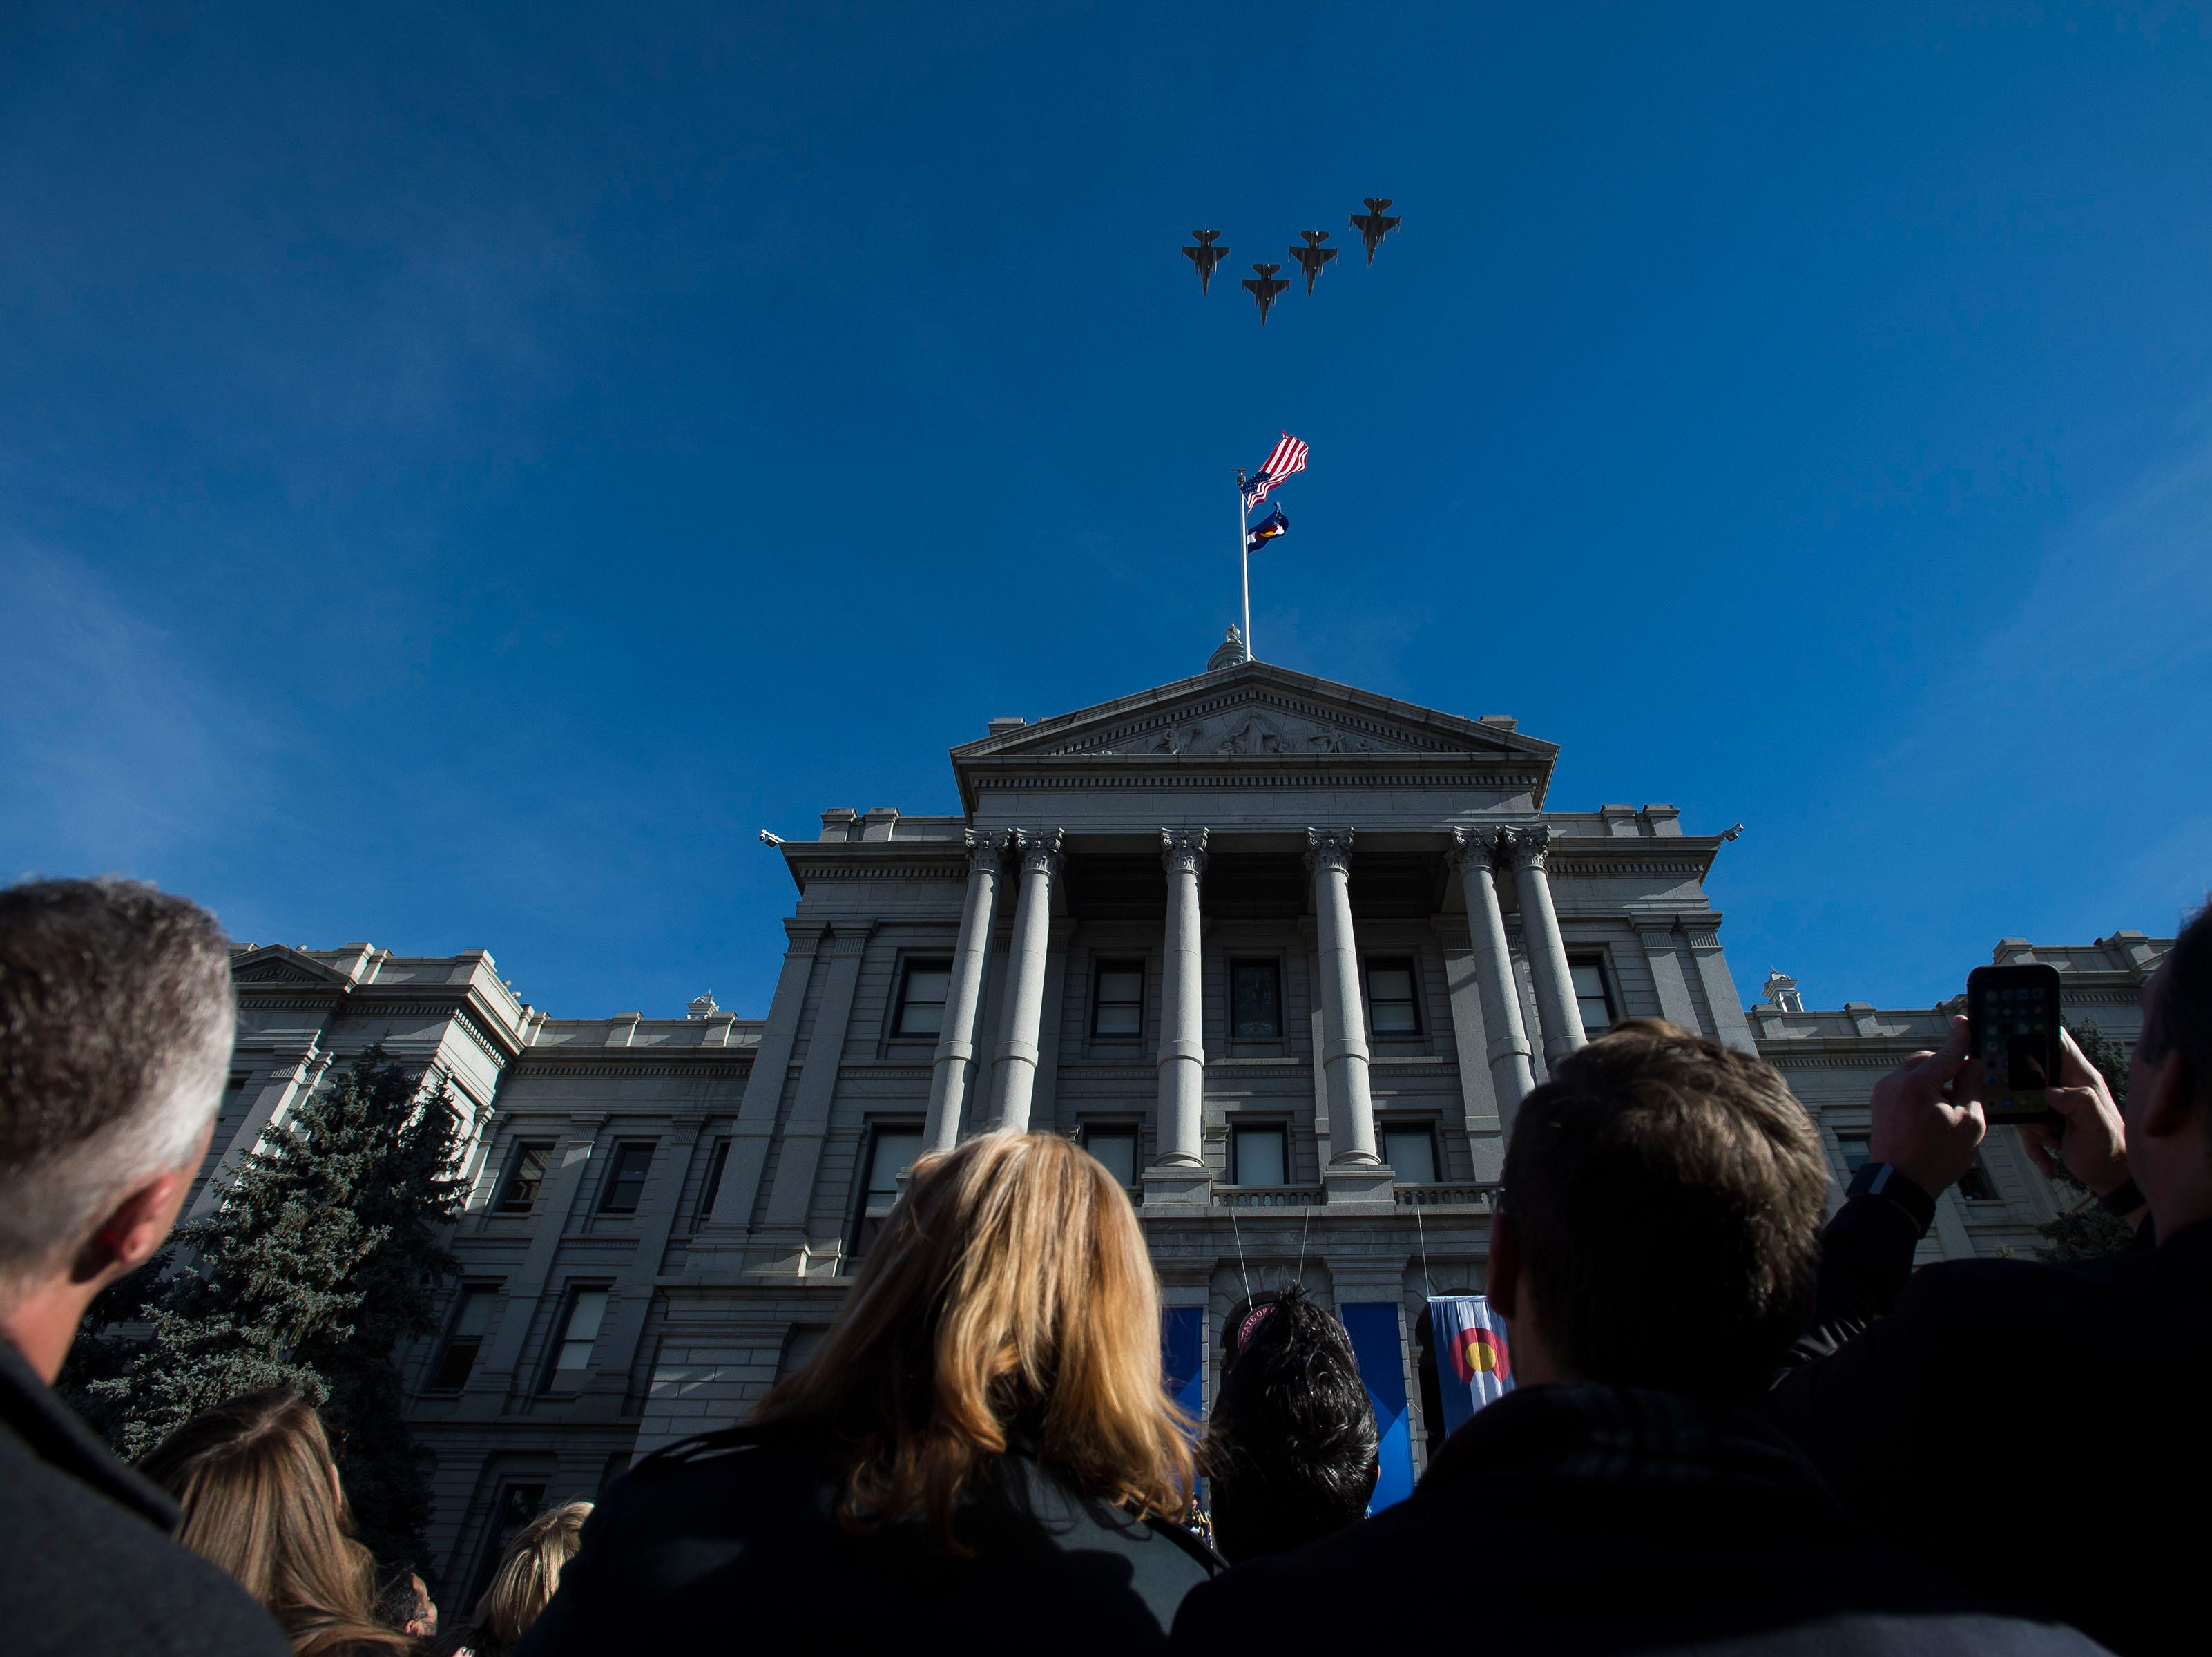 Military jets fly overhead at the conclusion of the inauguration of Colorado State Governor Jared Polis on Tuesday, Jan. 8, 2019, in front of the Colorado State Capital building in Denver, Colo.